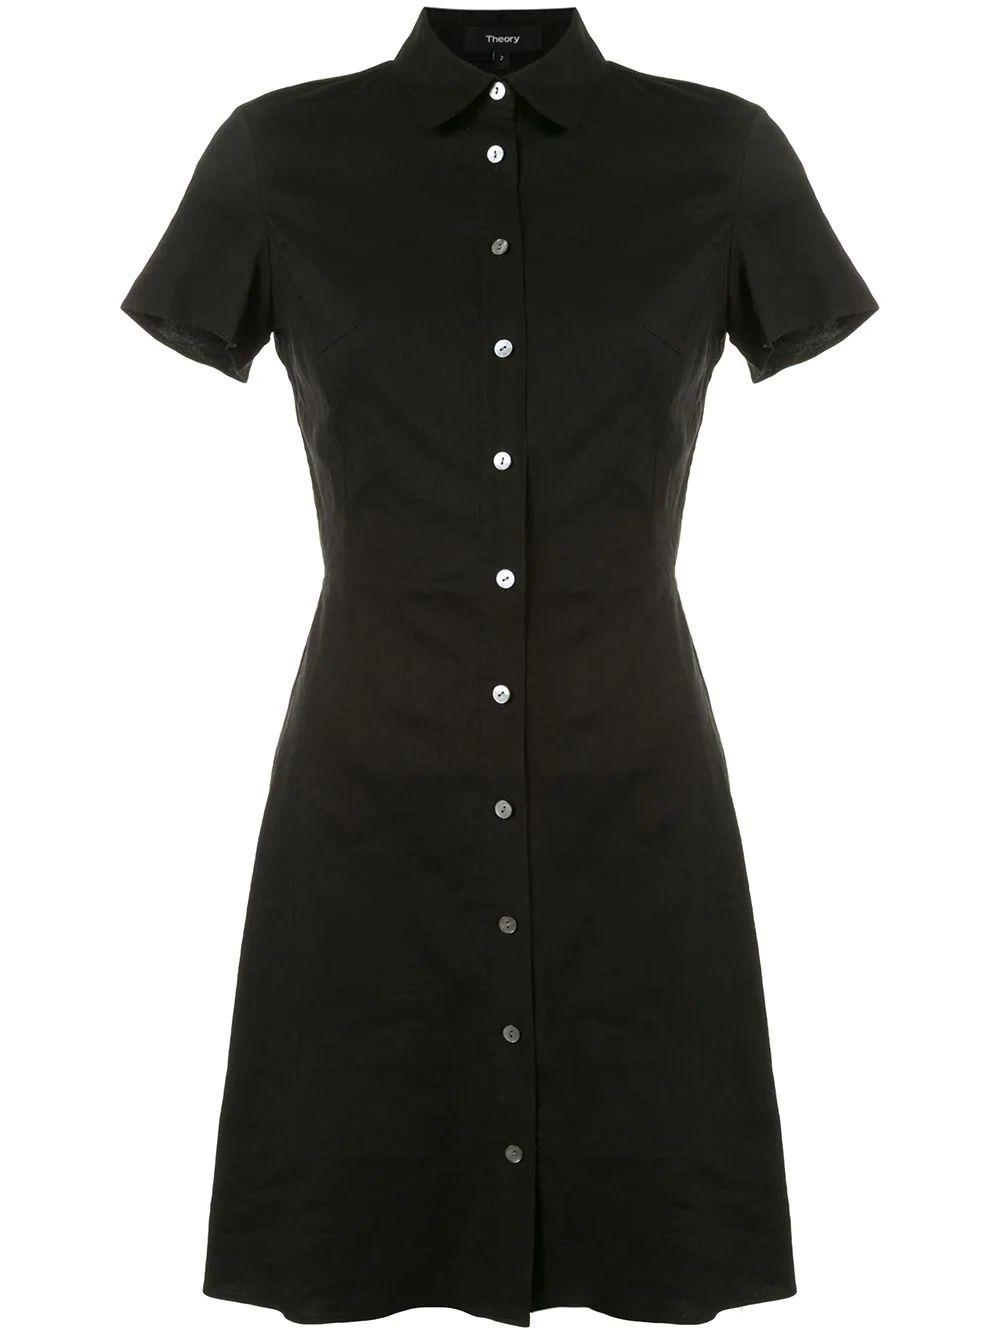 Eco Crunch Shirt Dress